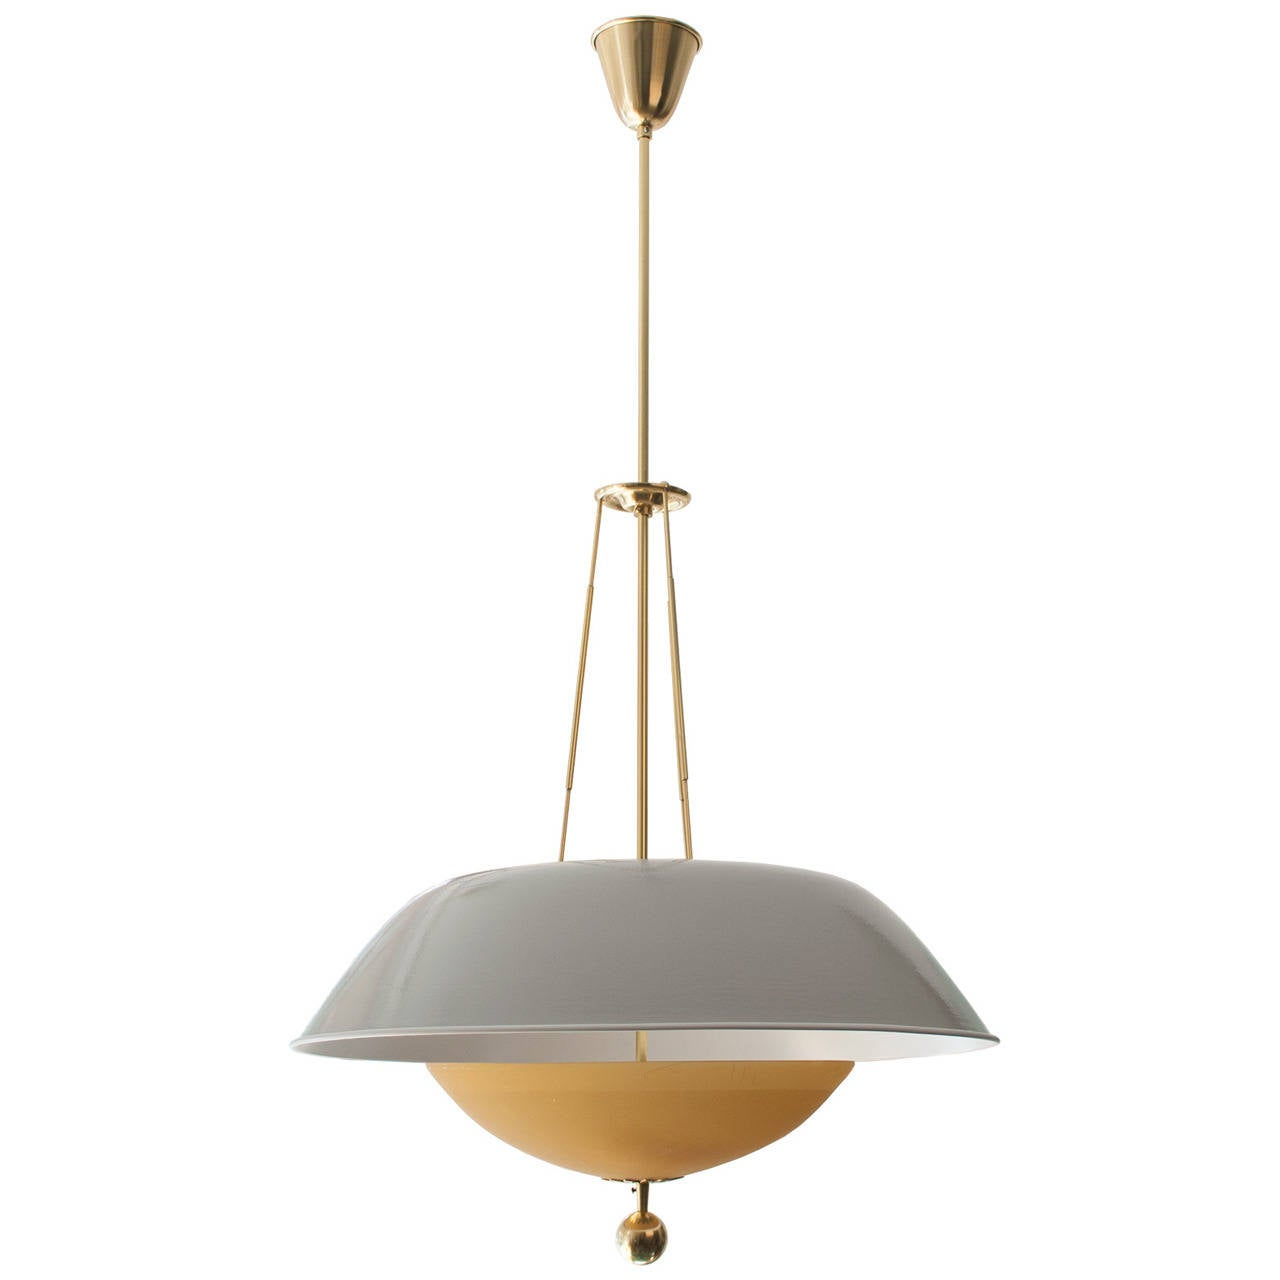 scandinavian mid century modern pendant with lacquered